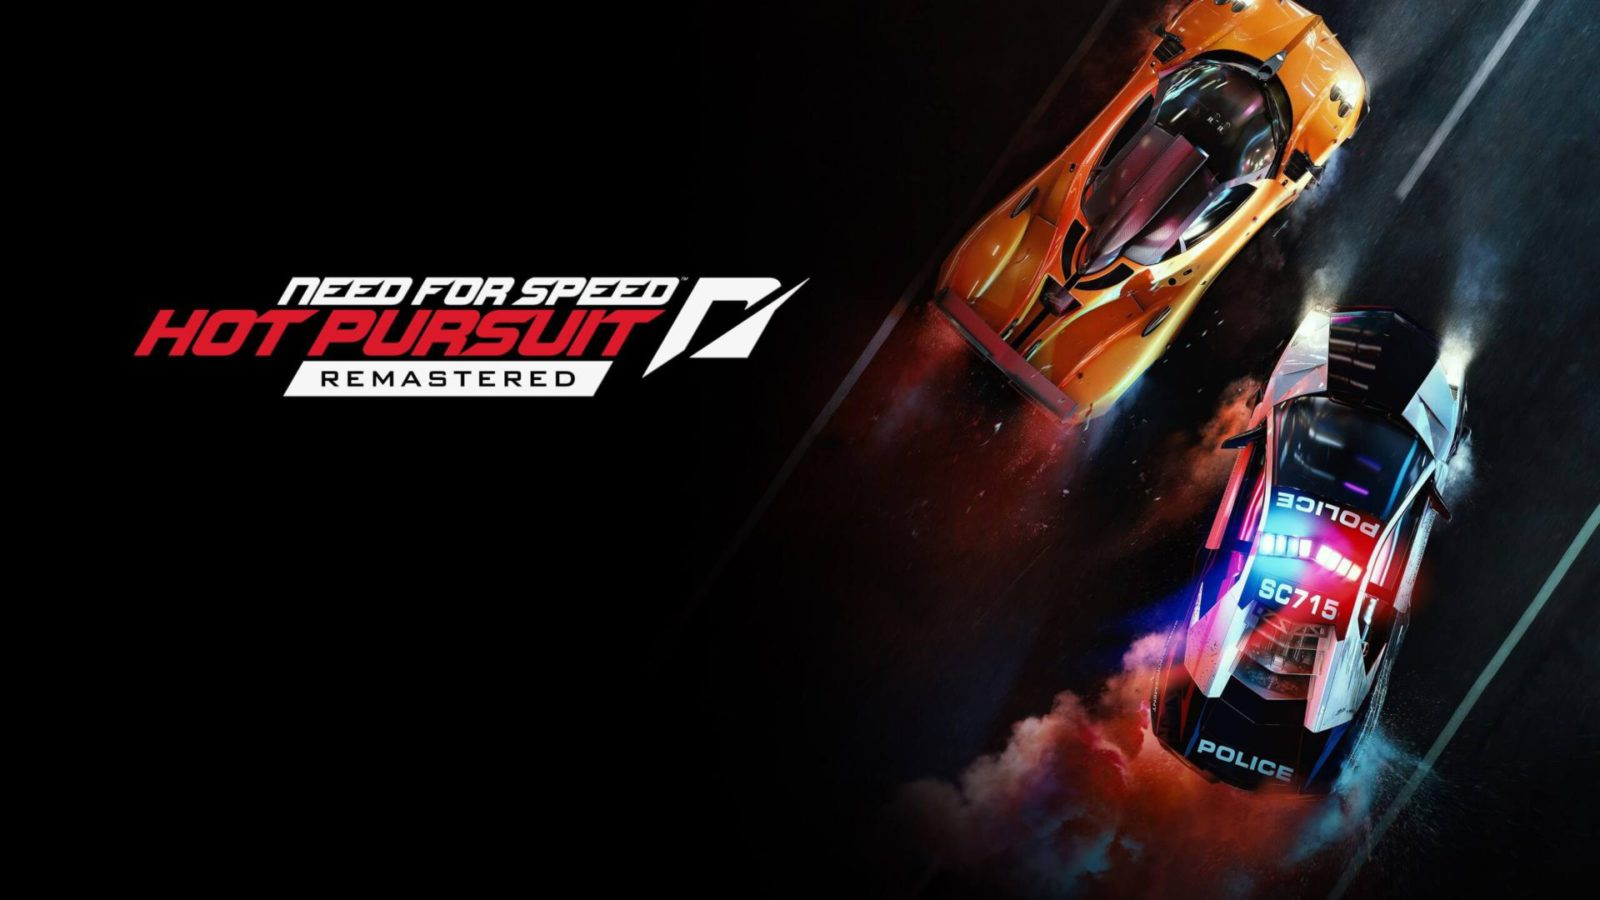 Need for Speed Hot Pursuit Remastered racing pc 2020